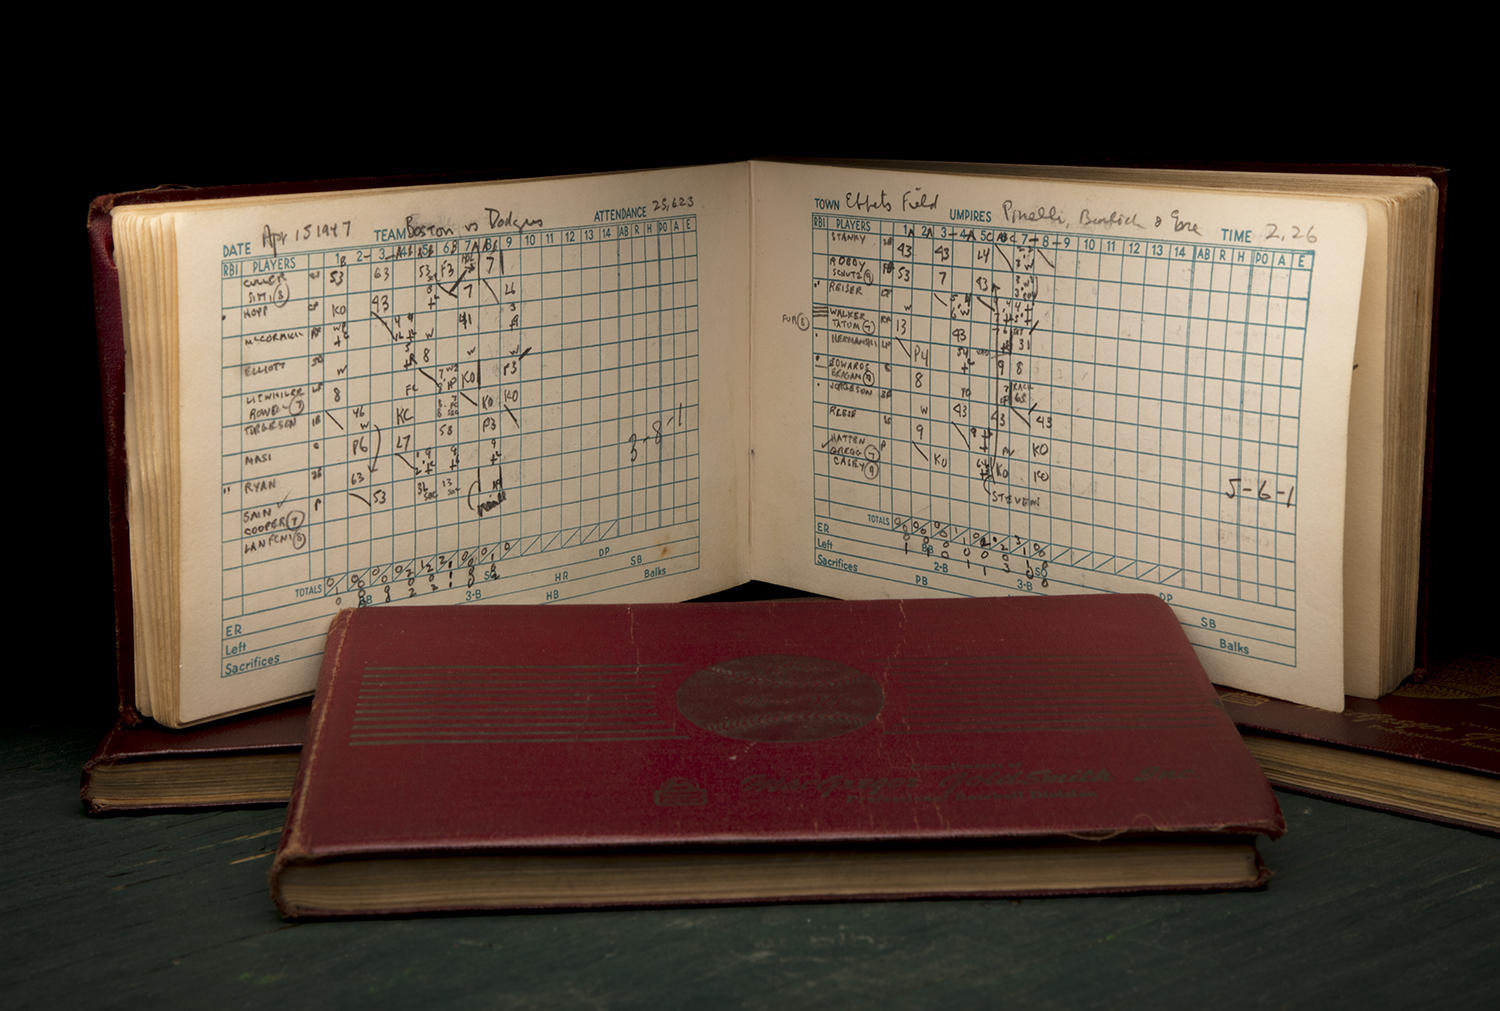 """Tom Meany, a journalist for the <em>New York World-Telegram</em>, was in attendance at Ebbets Field the day Jackie Robinson made his major league debut. He documented the game in his scorebook, now preserved in the Hall of Fame's collection. <a href=""""http://collection.baseballhall.org/islandora/object/islandora%3A506604"""">PASTIME</a> (Milo Stewart Jr. / National Baseball Hall of Fame and Museum)"""